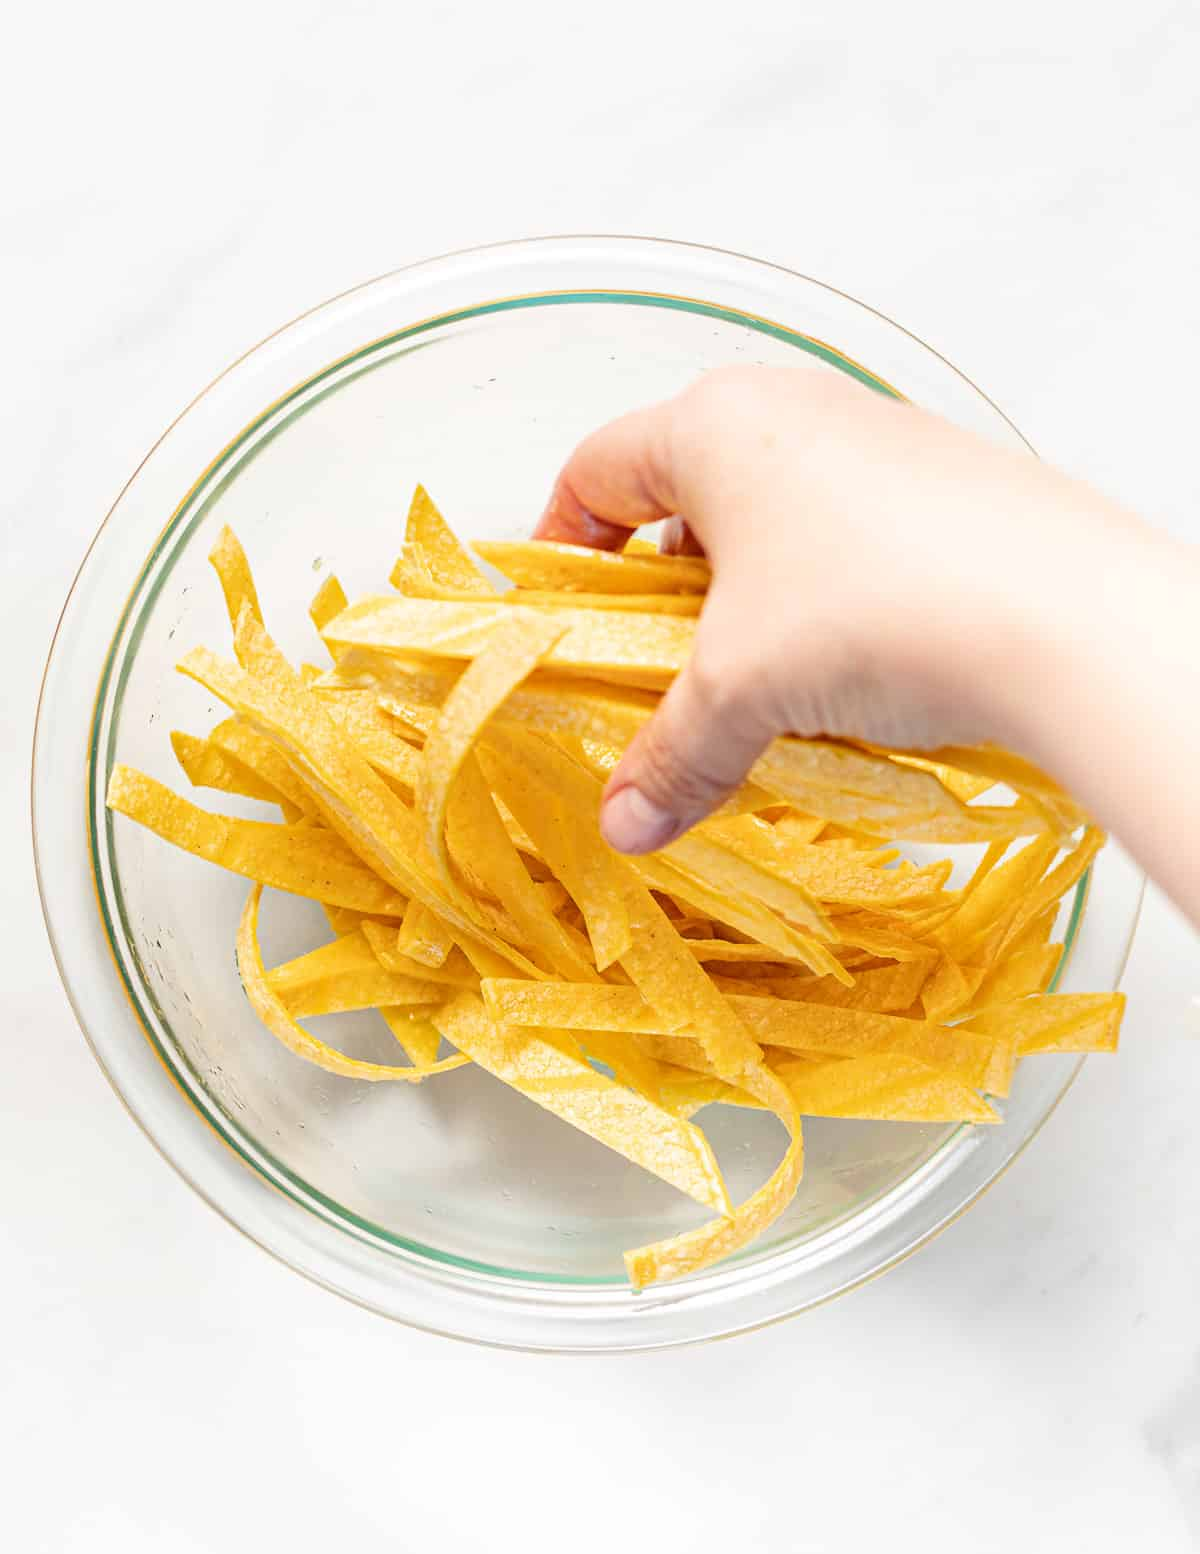 massaging oil into tortilla strips